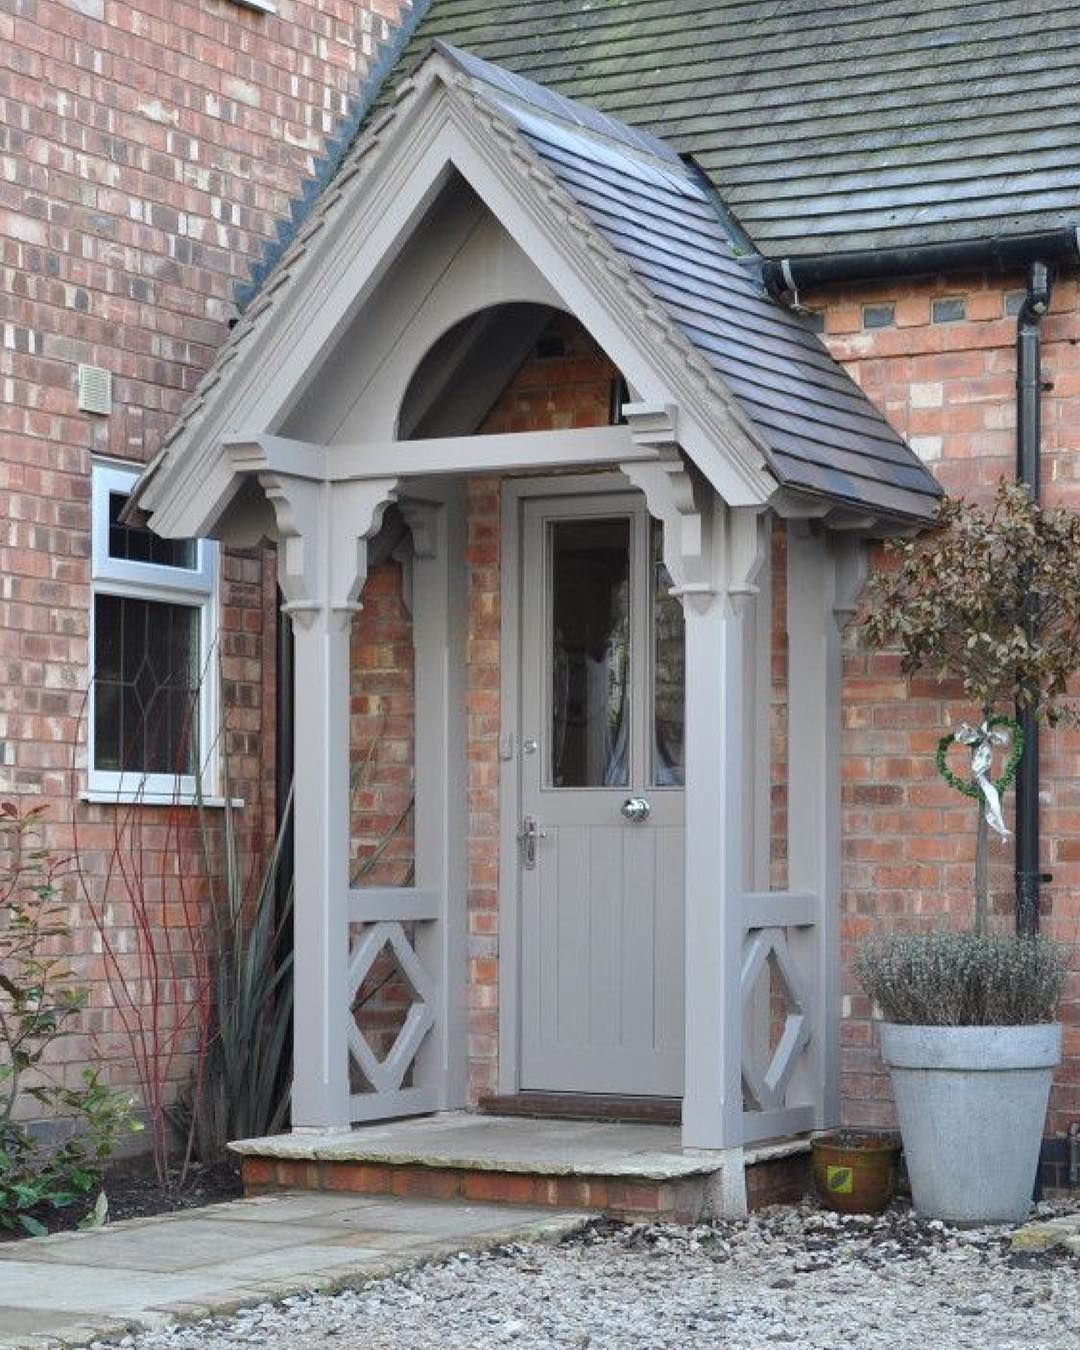 Wooden Front Porch Uk: Lovely Porch Area Credit: The English Porch Company #porch